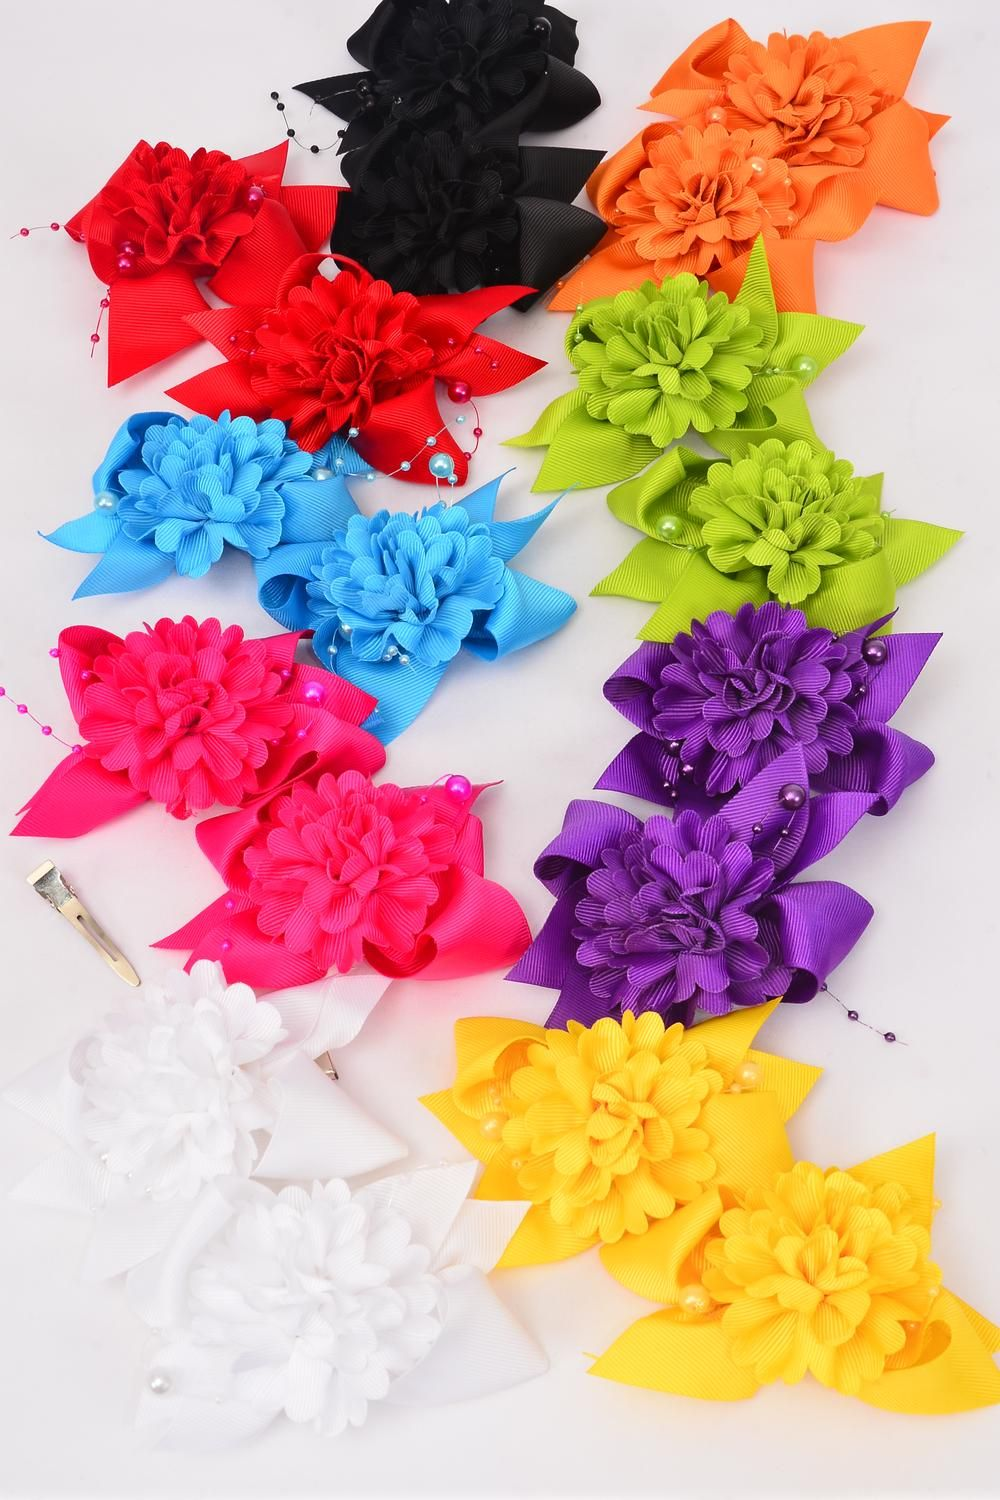 "Hair Bows 24 pcs Multi Flower & Pearl Strings Grosgrain Bow-tie/DZ **Multi** Size-4""x 3"", 2 Black,2 White,2 Fuchsia,1 Yellow,1 Red,1 Blue,1 Purple,1 Lime,1 Orange mix,Clip Strip & UPC Code,12 Pair=Dozen"